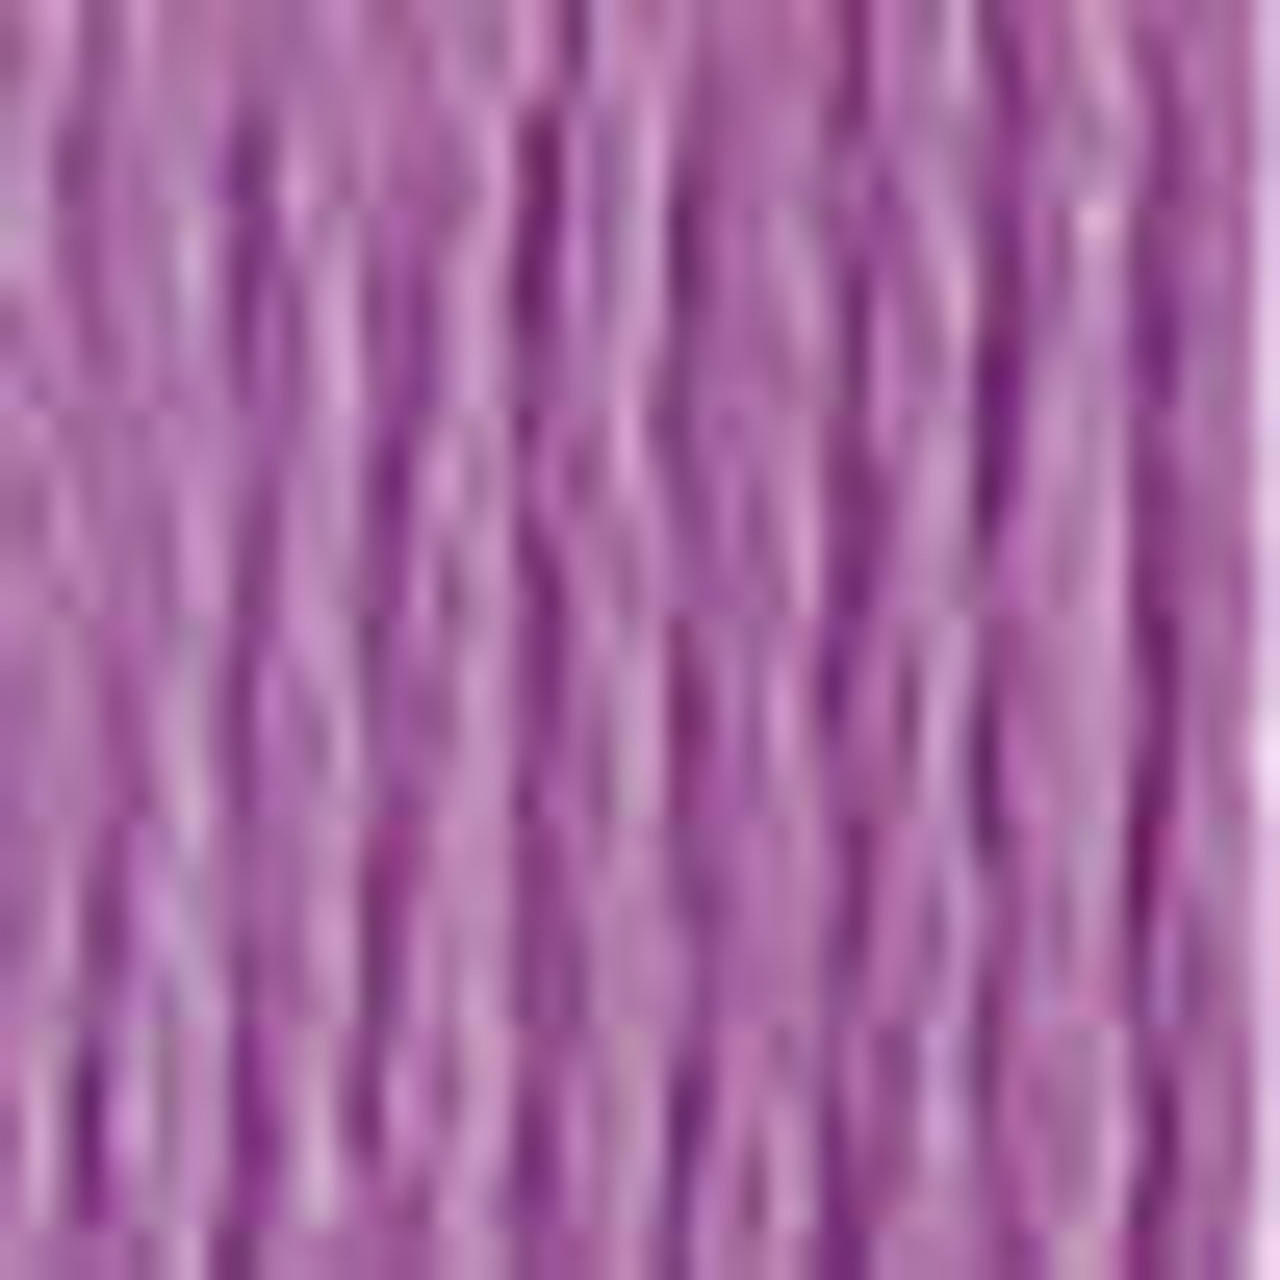 DMC # 553 Violet Floss / Thread